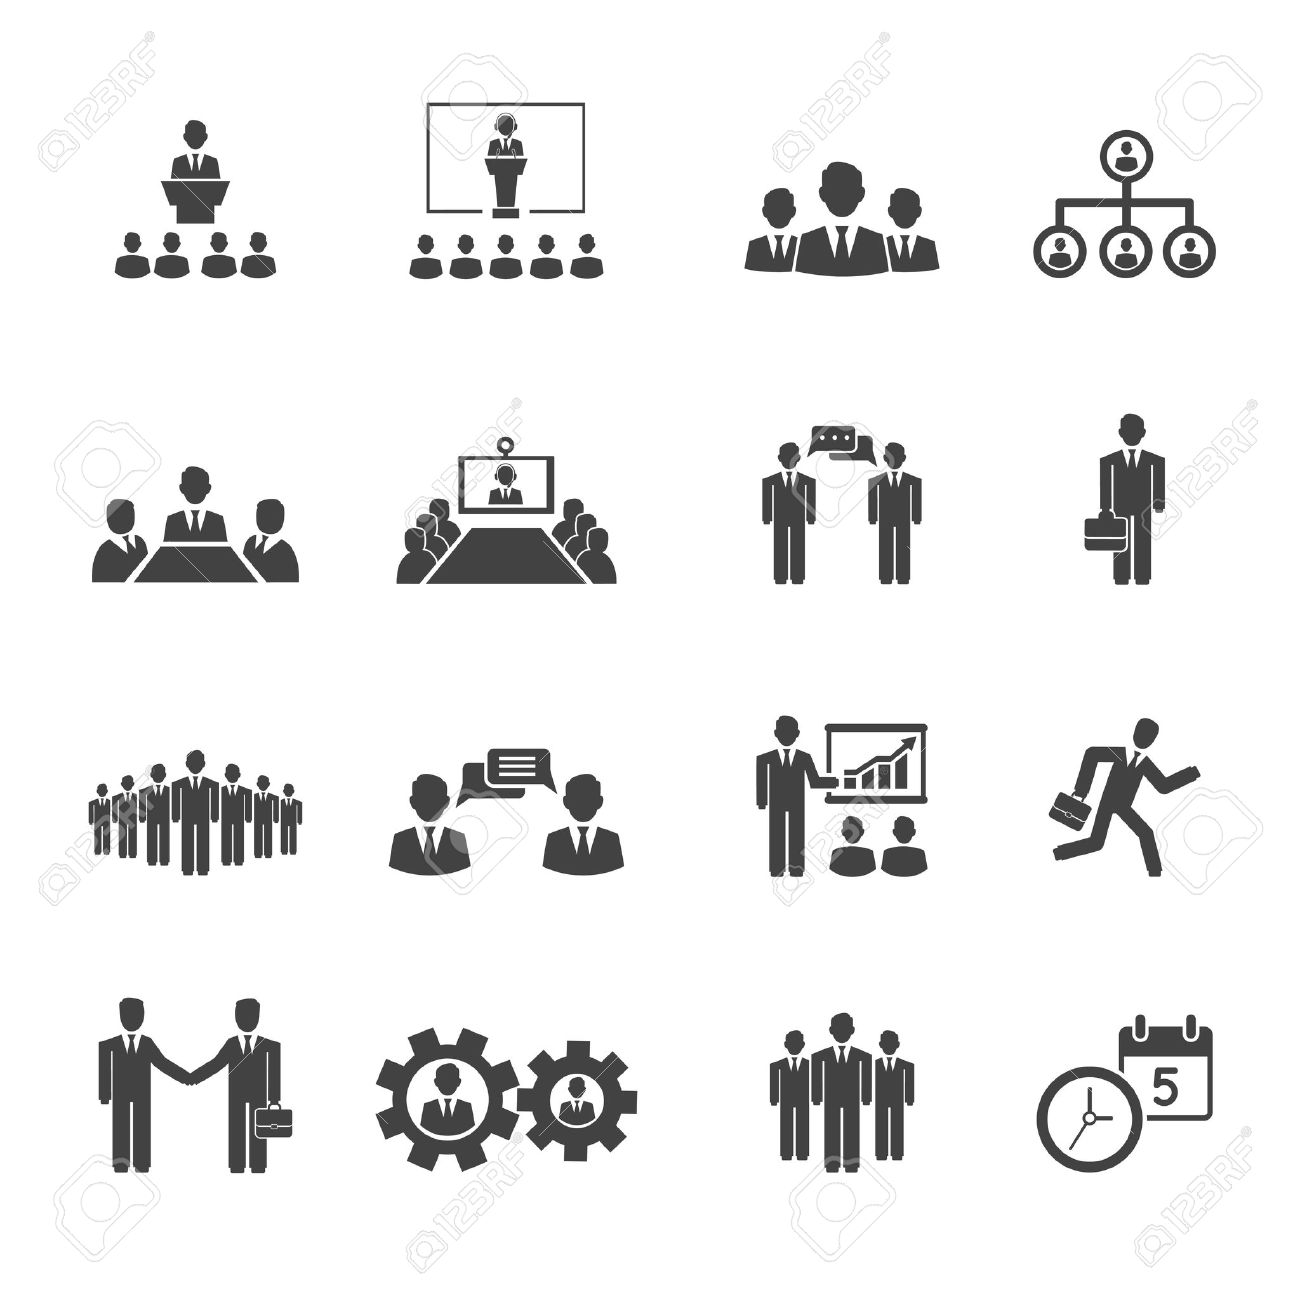 Business people meetings and conferences vector icons showing training presentations conference table leadership teamwork groups discussion brainstorming handshake deadline and schedule - 27842987